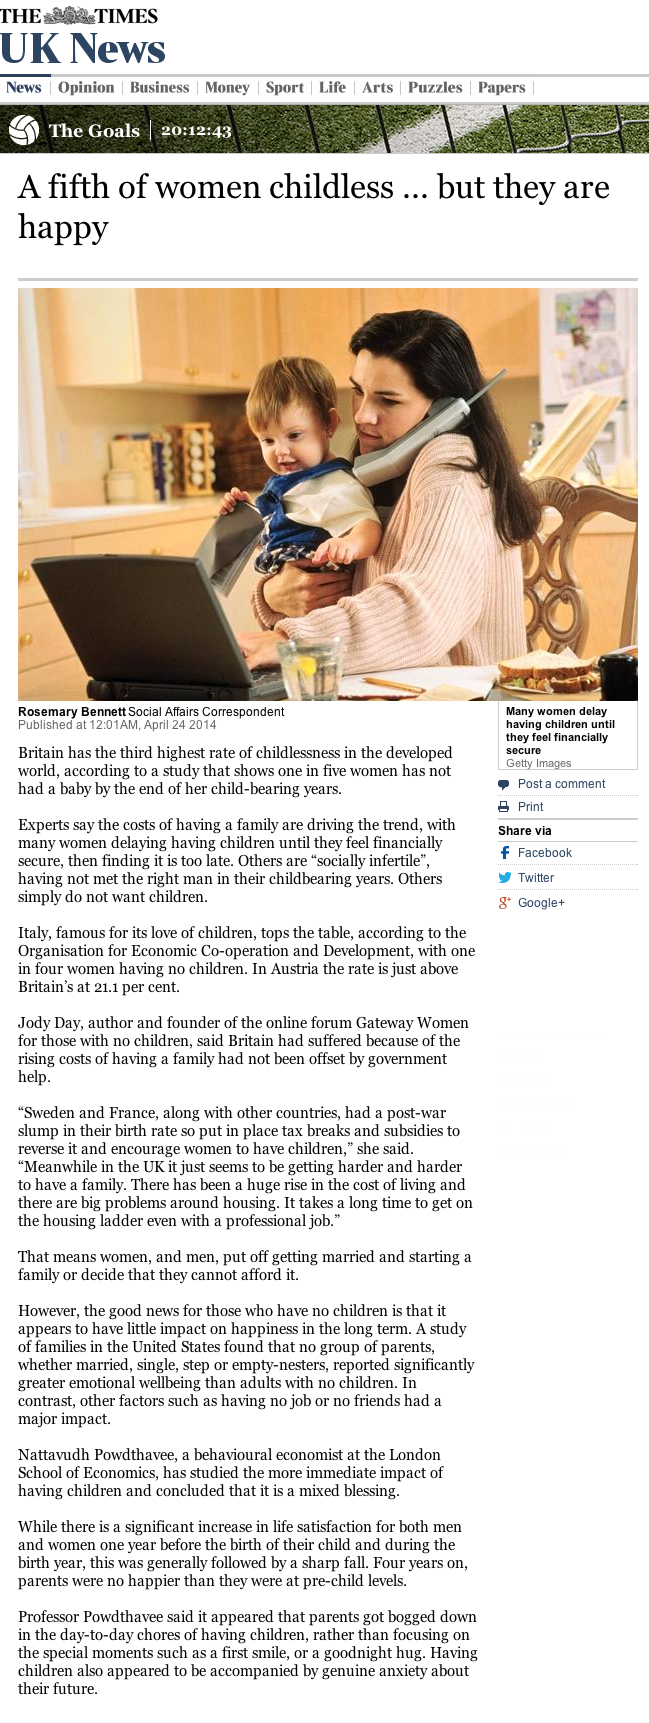 The Times – childless women in UK